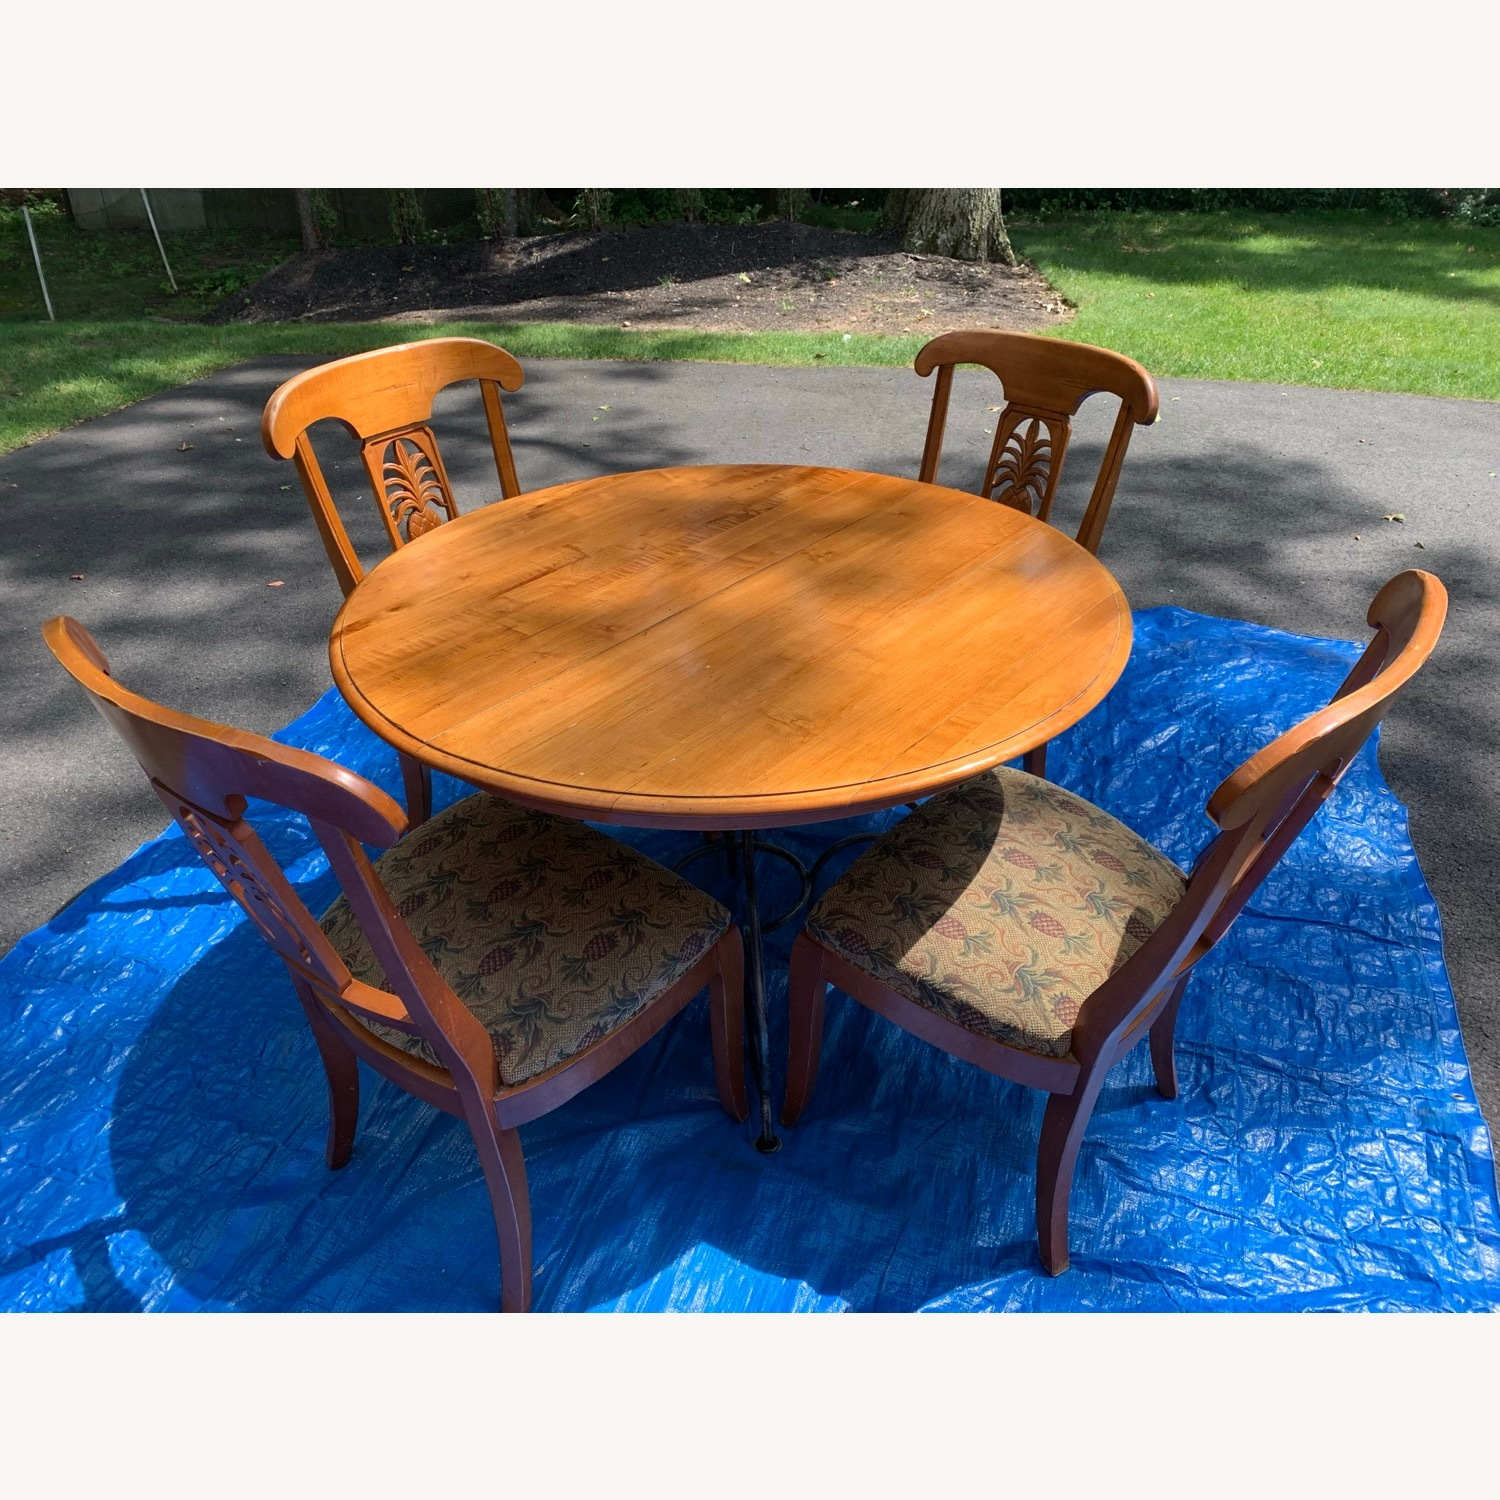 Ethan Allen Wood Dining Table with Leaf & 4 Chairs - image-1